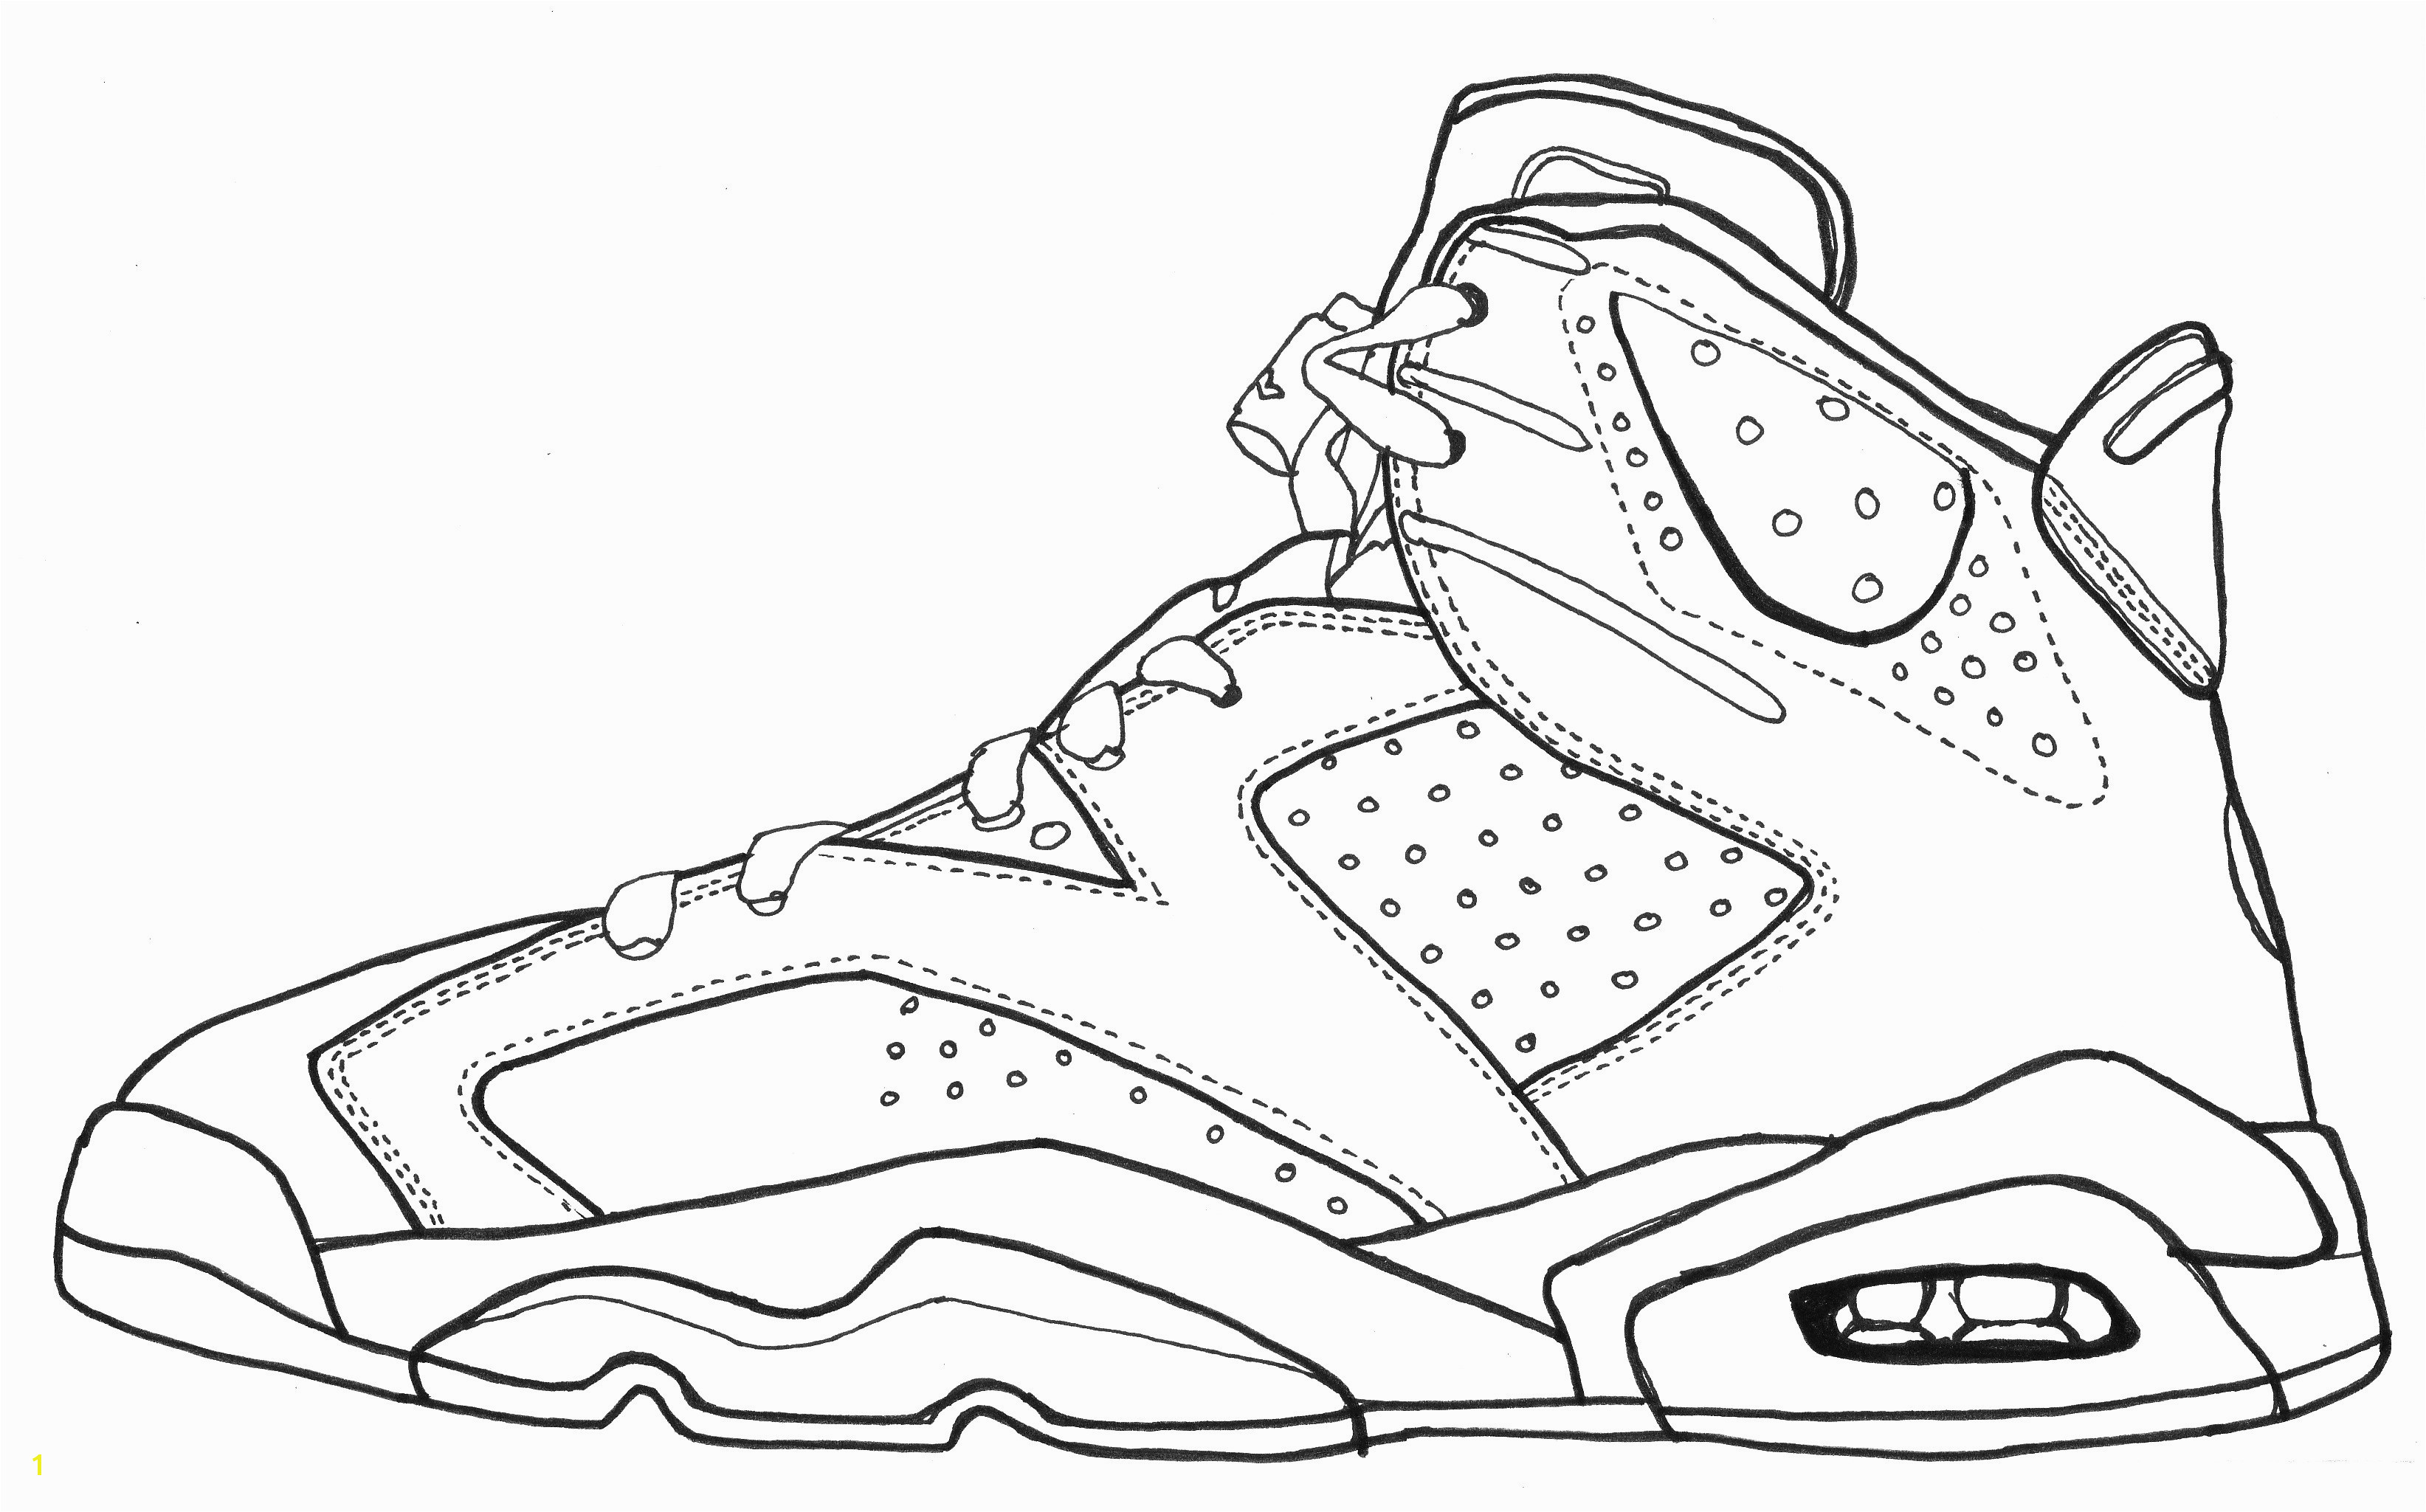 Slitherio Coloring Pages Inspirational Liberal Lebron Shoes Coloring Pages Jordan 11 6317 Unknown 12 Luxury